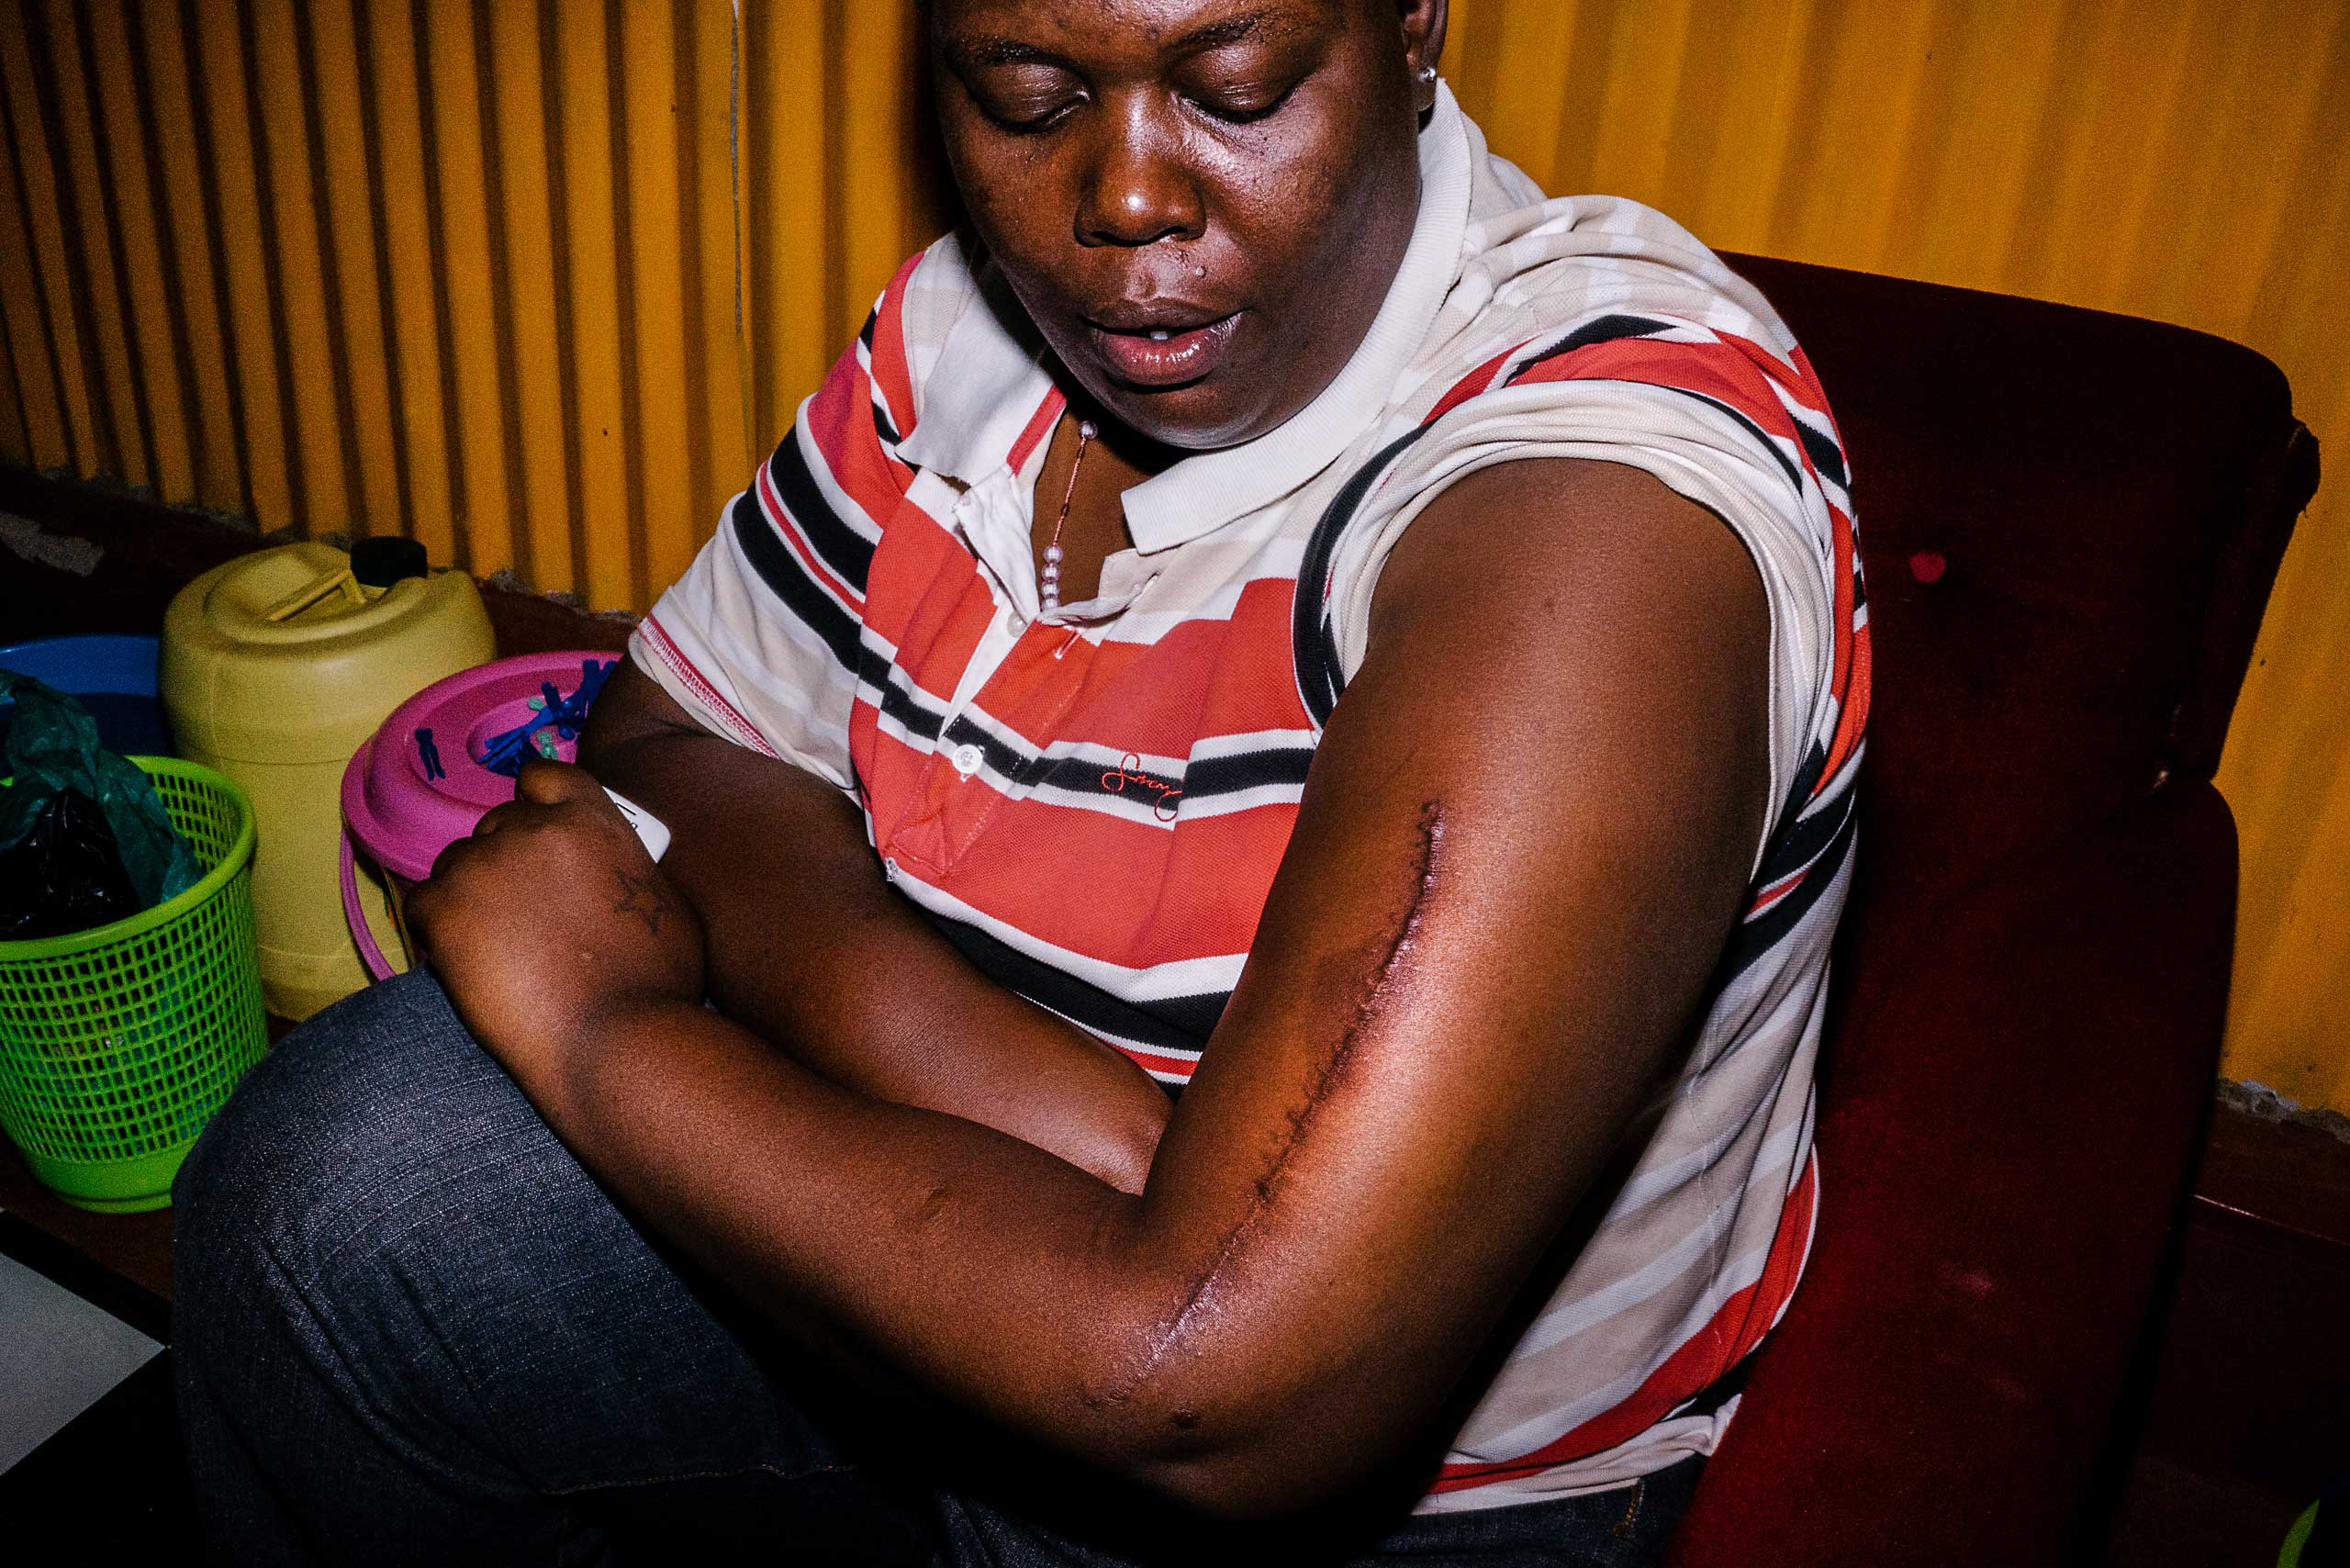 Cynthia displays a scar she says she received at the hands of Burundian police when they attacked her because of her sexuality.